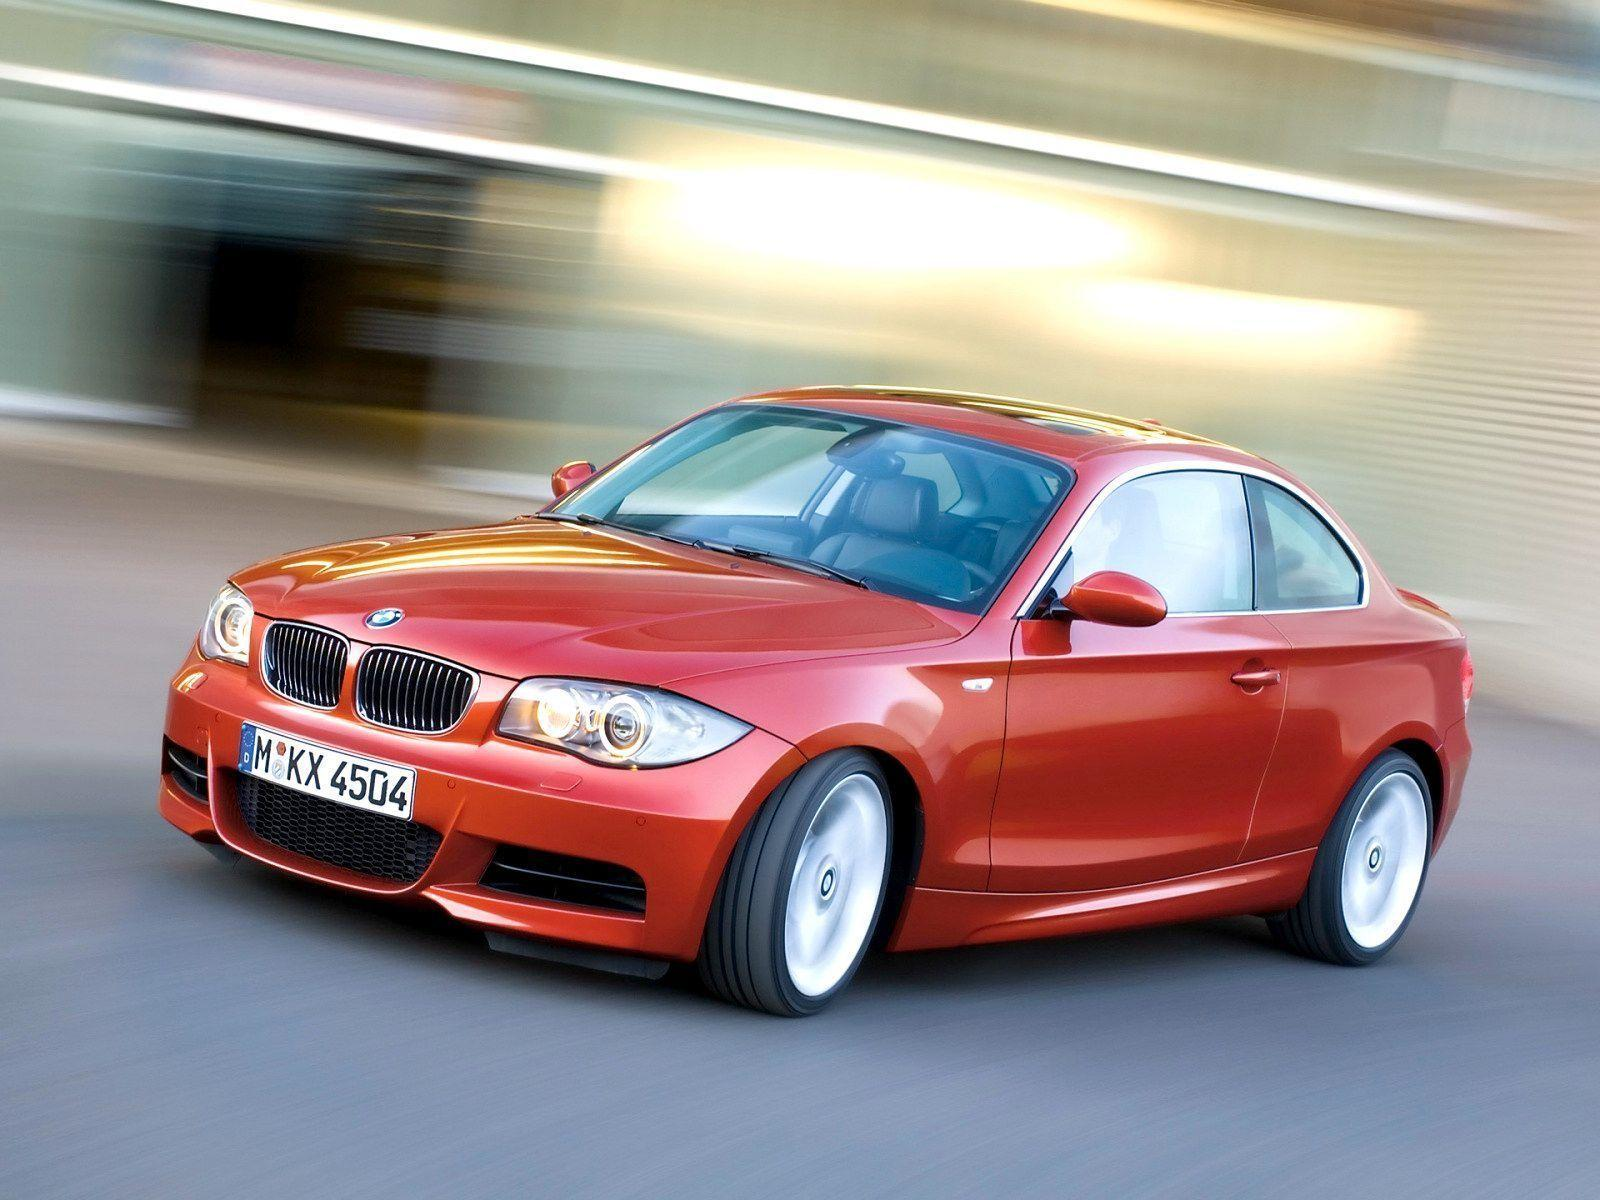 2008 BMW 1 Series Coupe Wallpaper 09 - 1600x1200